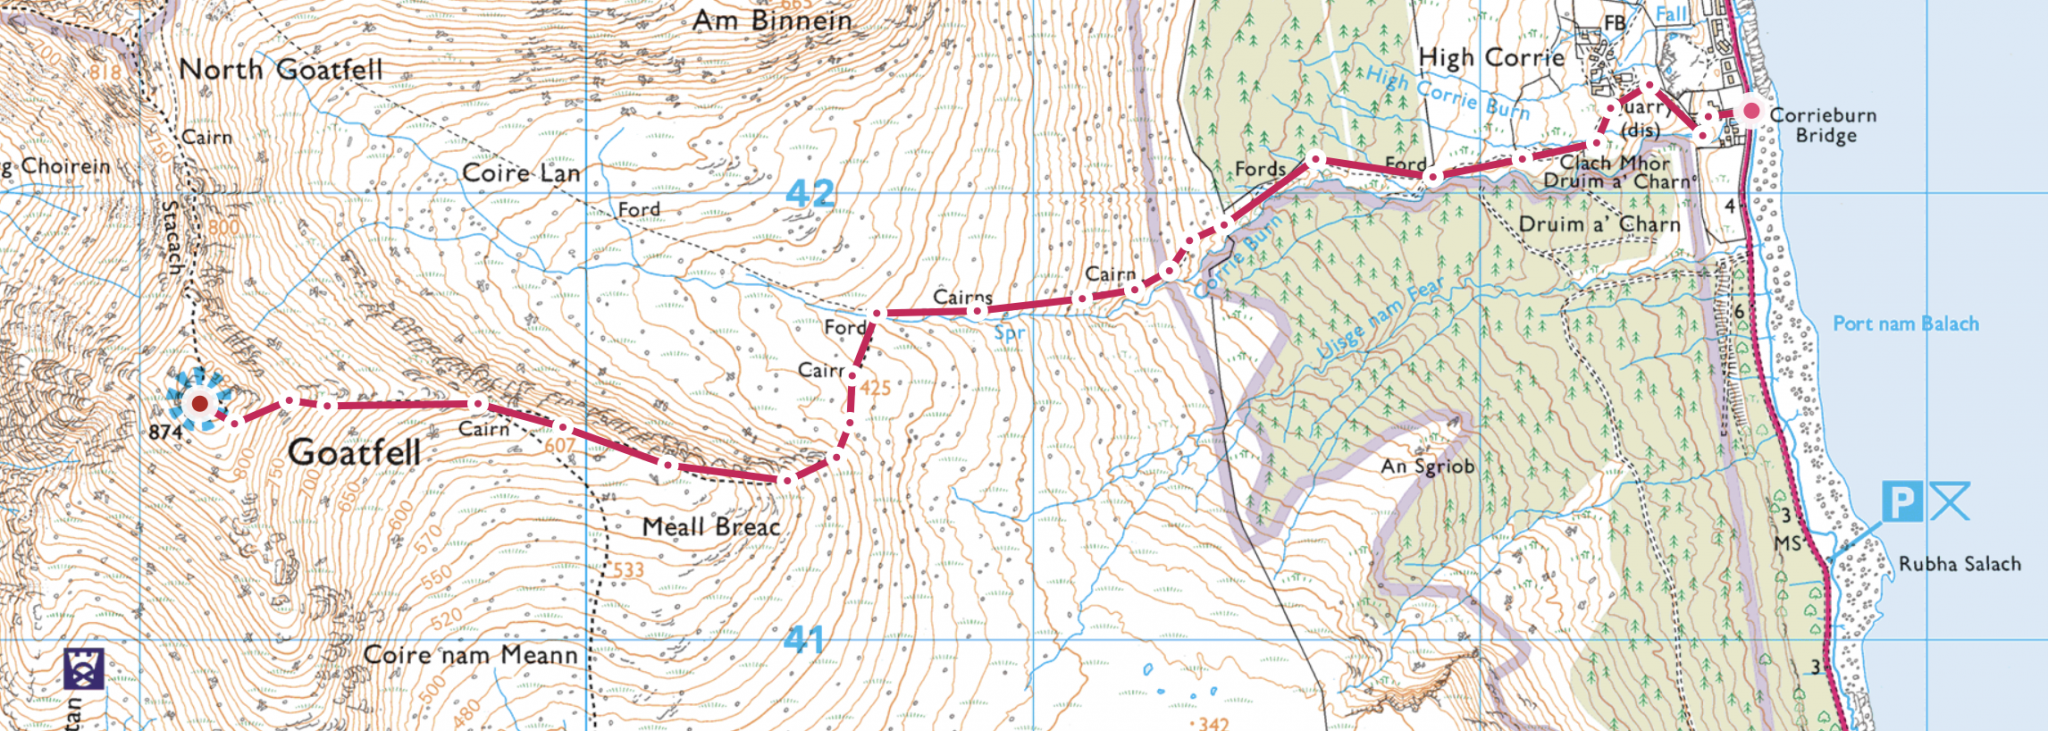 Screen shot of way up Goatfell from OS maps